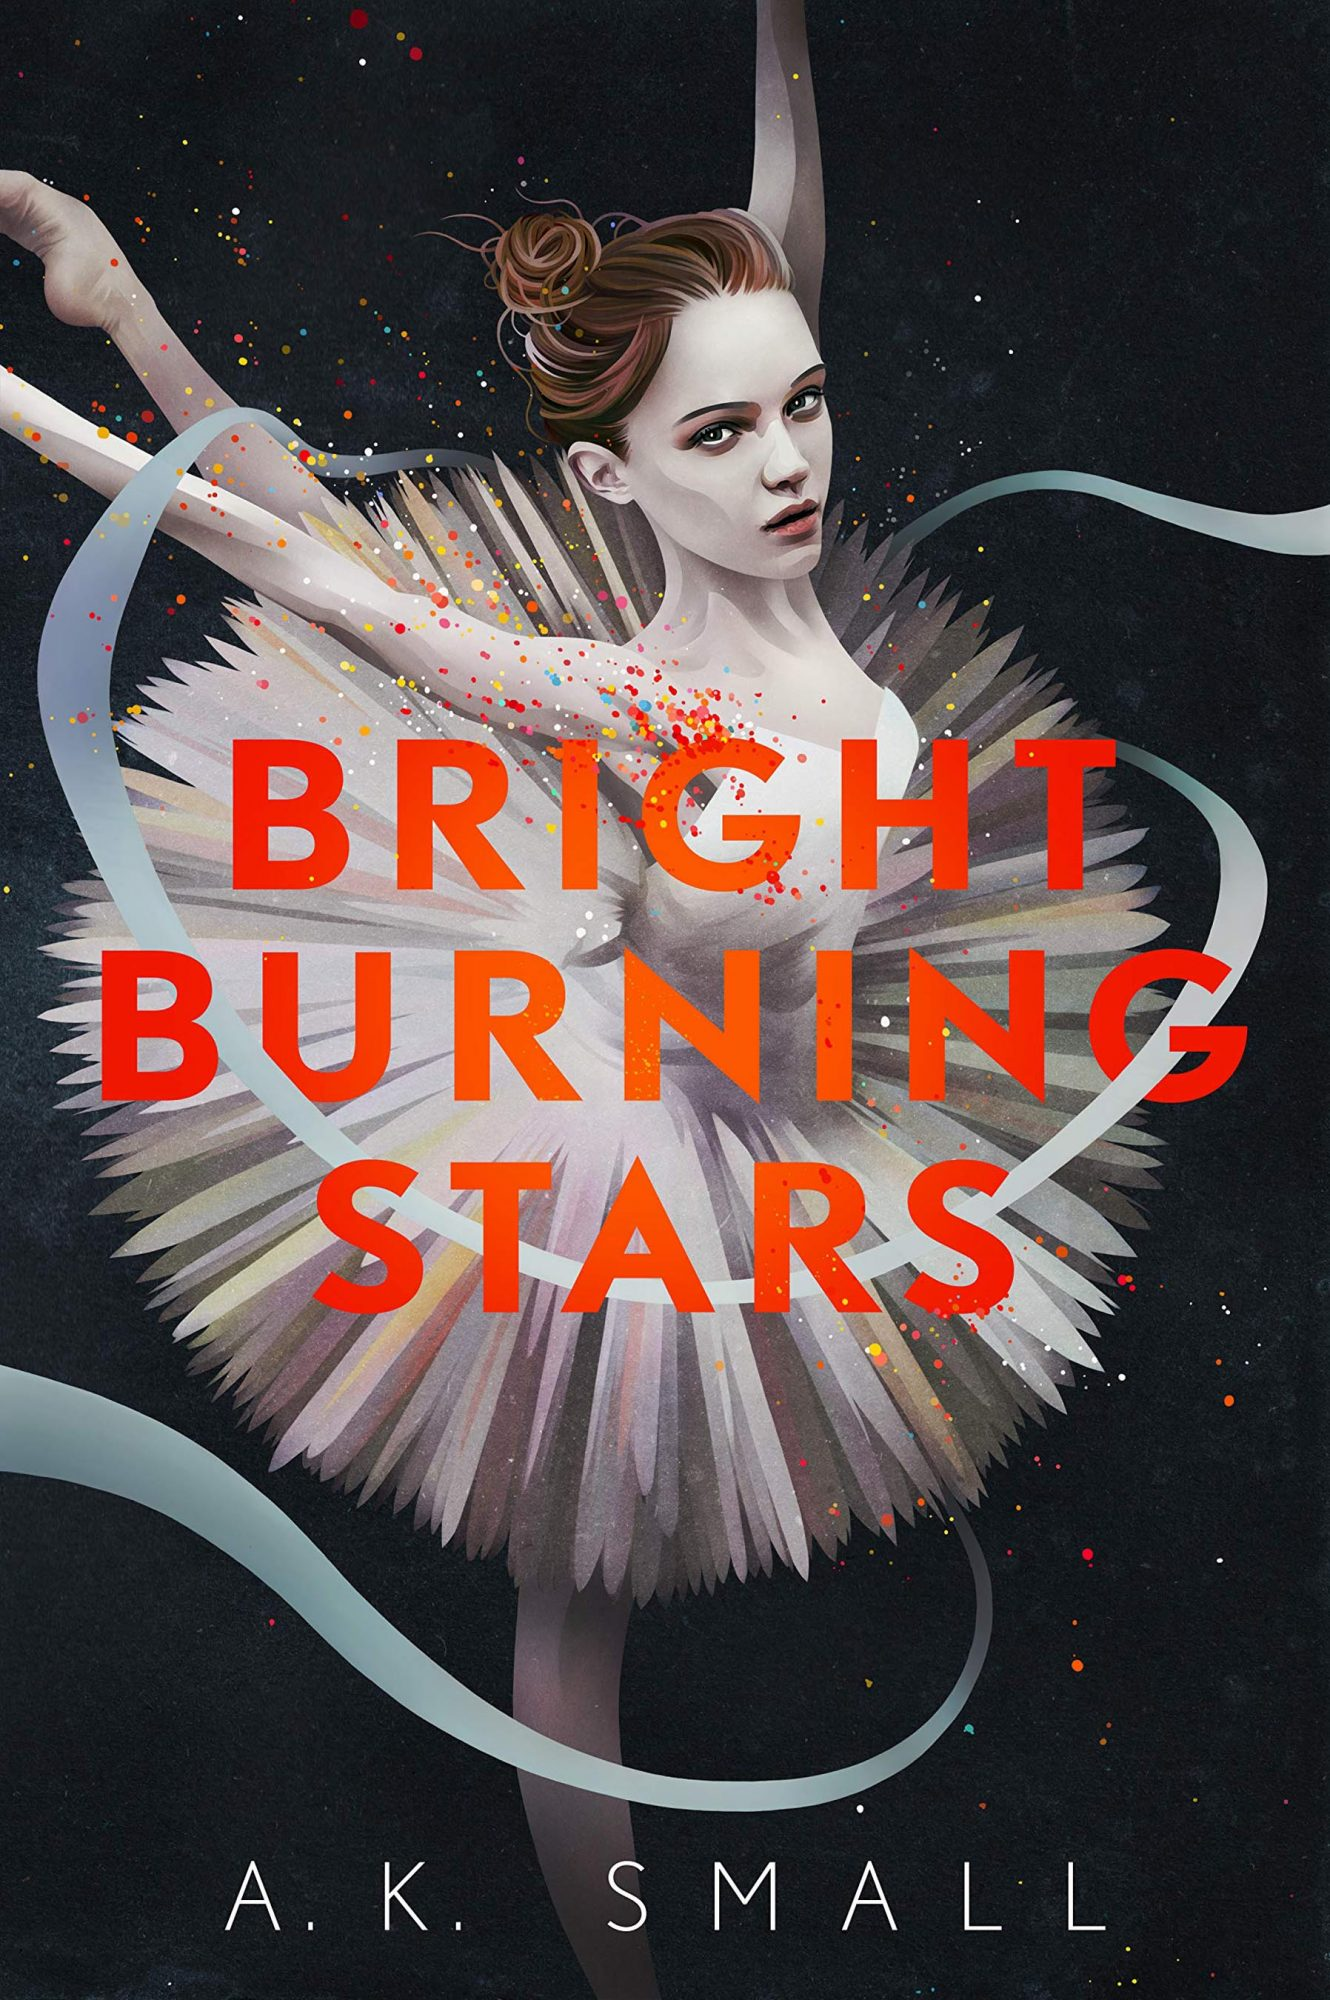 Bright Burning Stars by A.K. SmallPublisher: Algonquin Young Readers